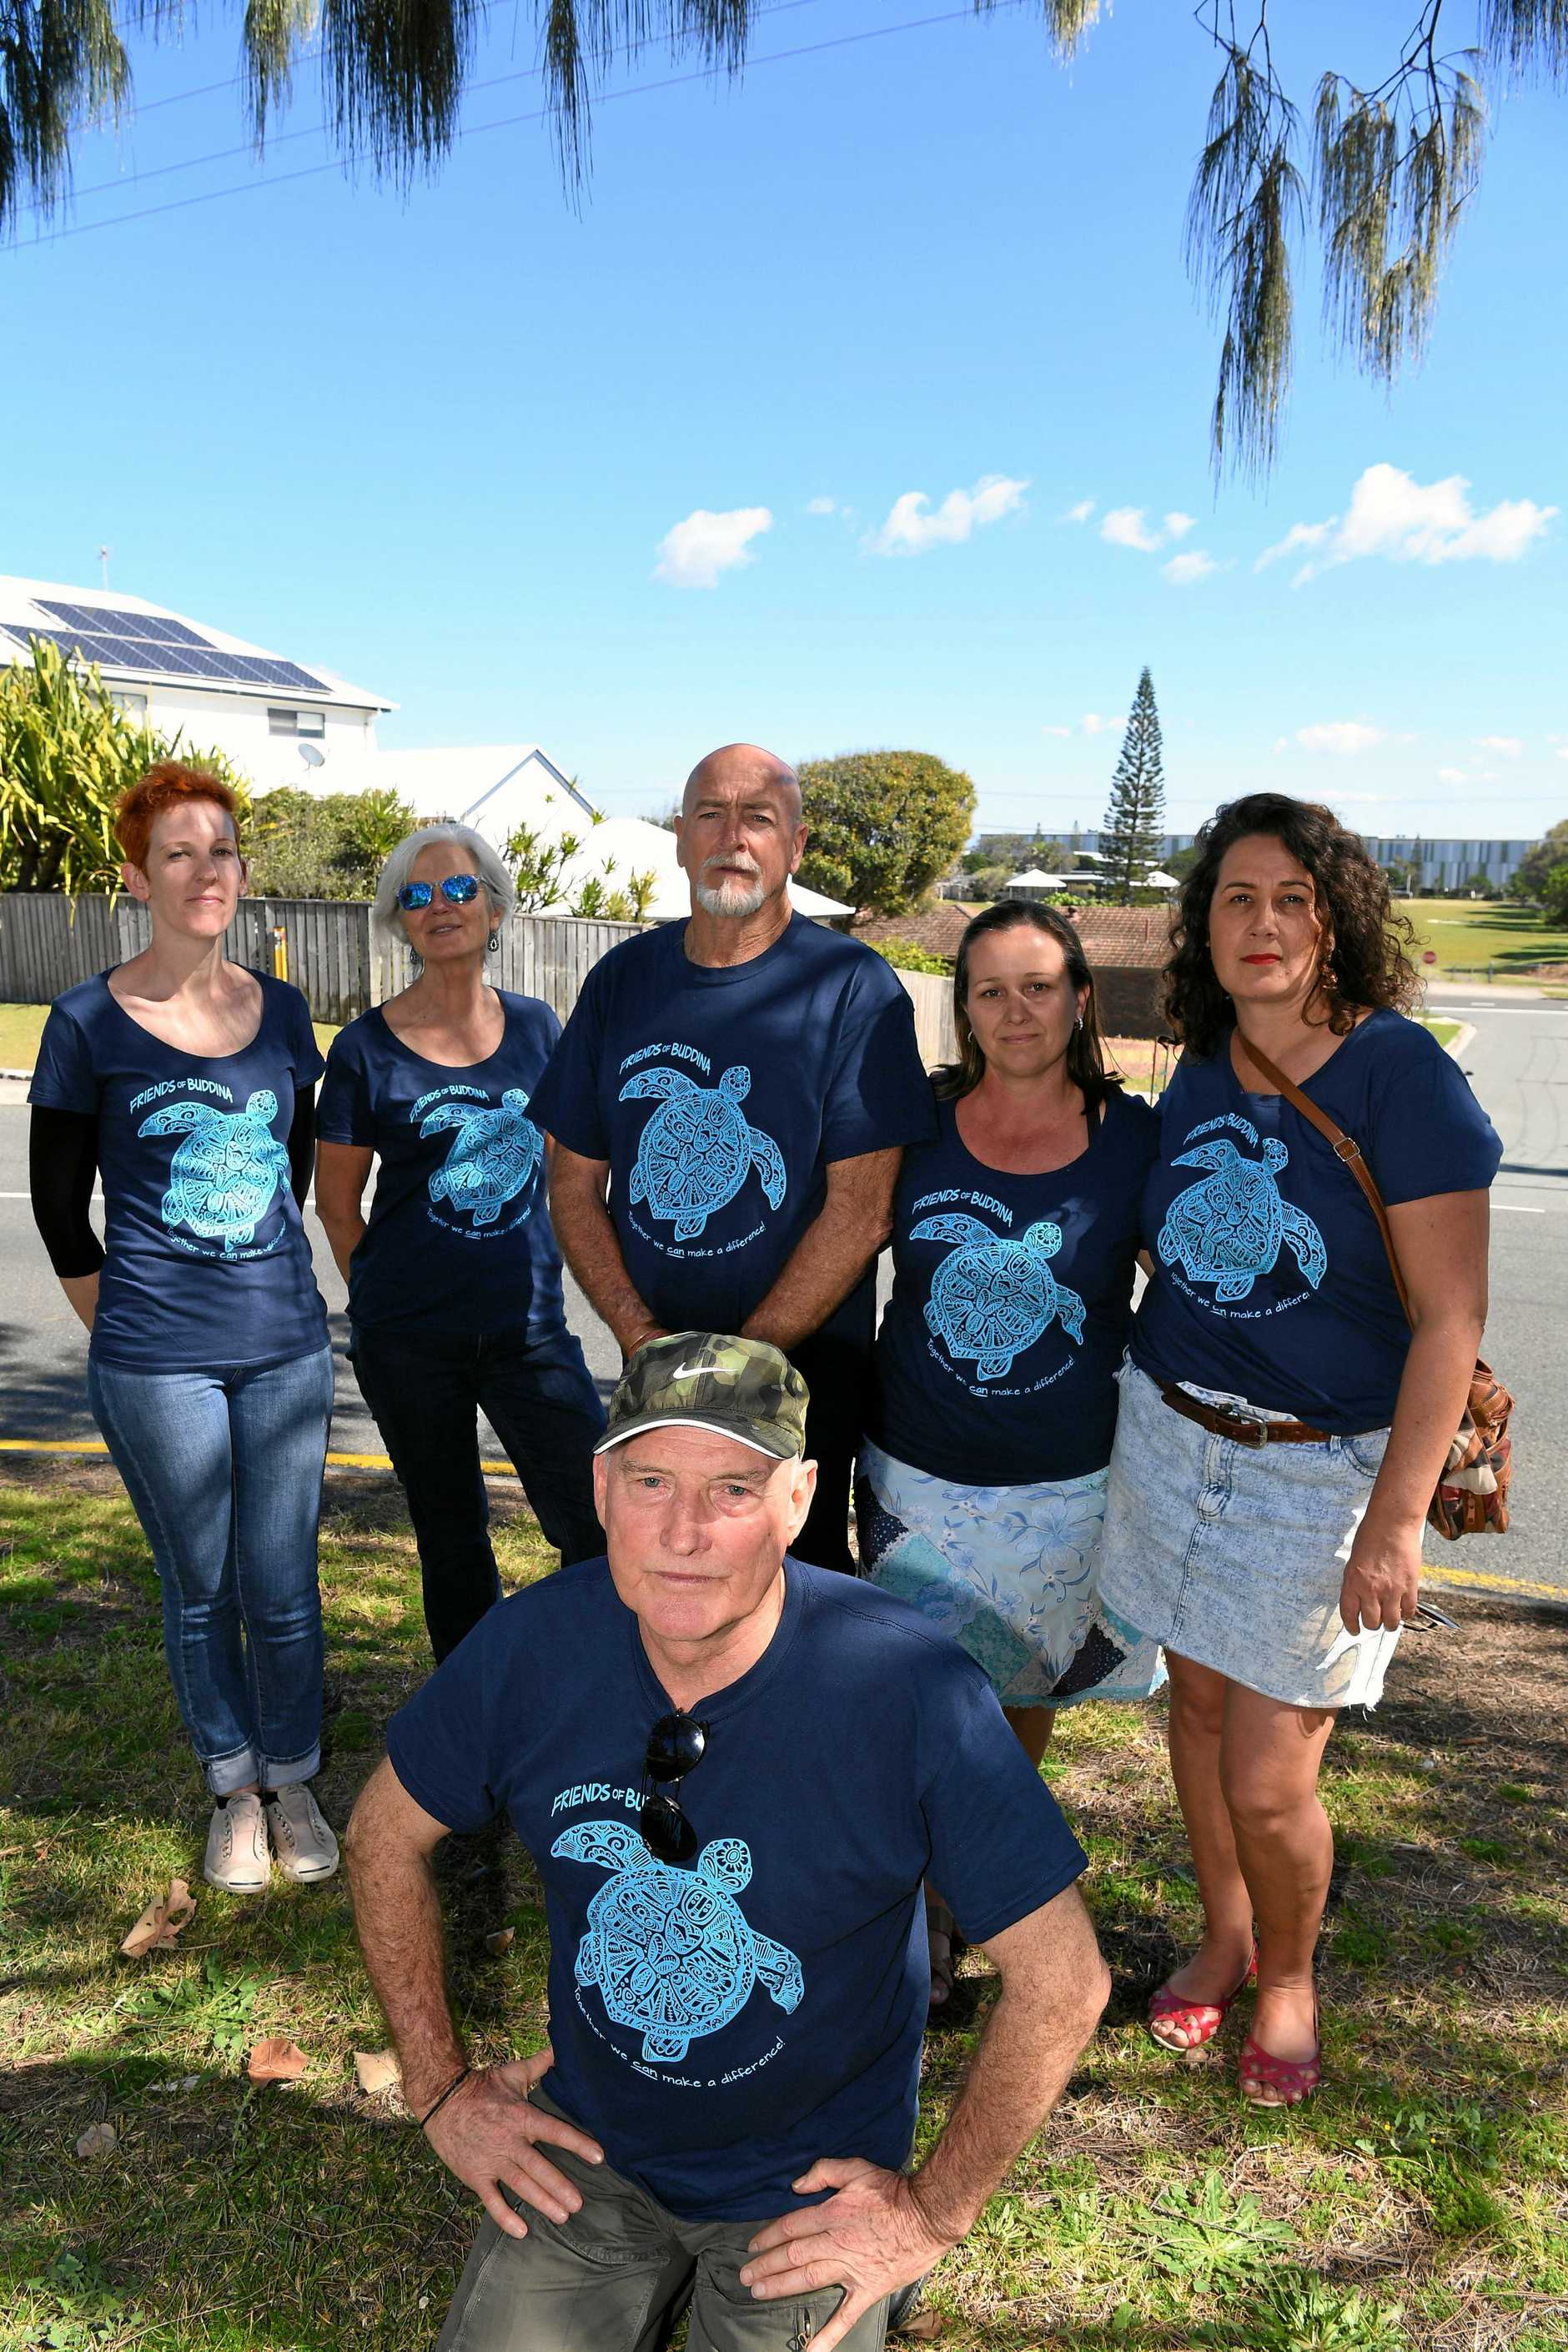 Some Buddina residents are opposed to a highrise develpment planned for the the area.Friends of Buddina spokesman Terry Boyce (front) is pictured with the other members (who don't want to be named in the photo).